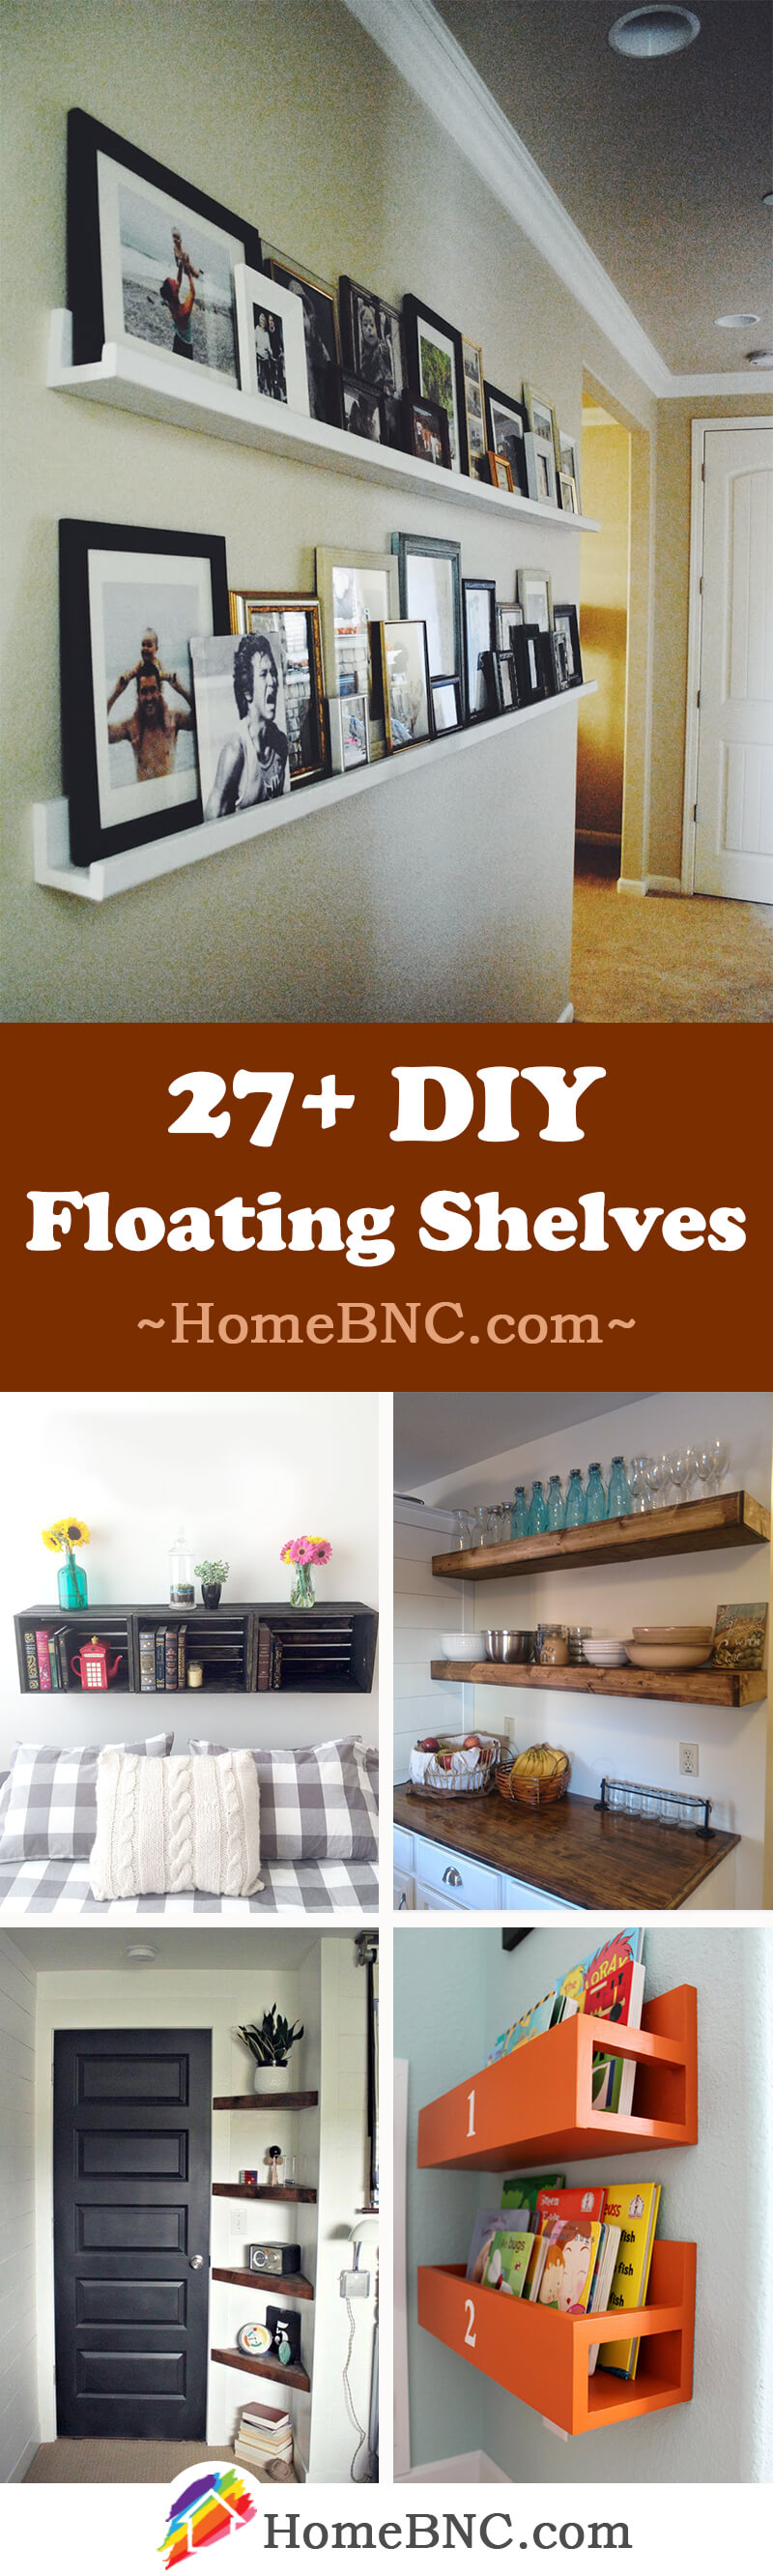 best diy floating shelf ideas and designs for share homebnc living room shelves tures bold save space mitre storage kitchen counter design glass cutter wood mantel upper cabinet